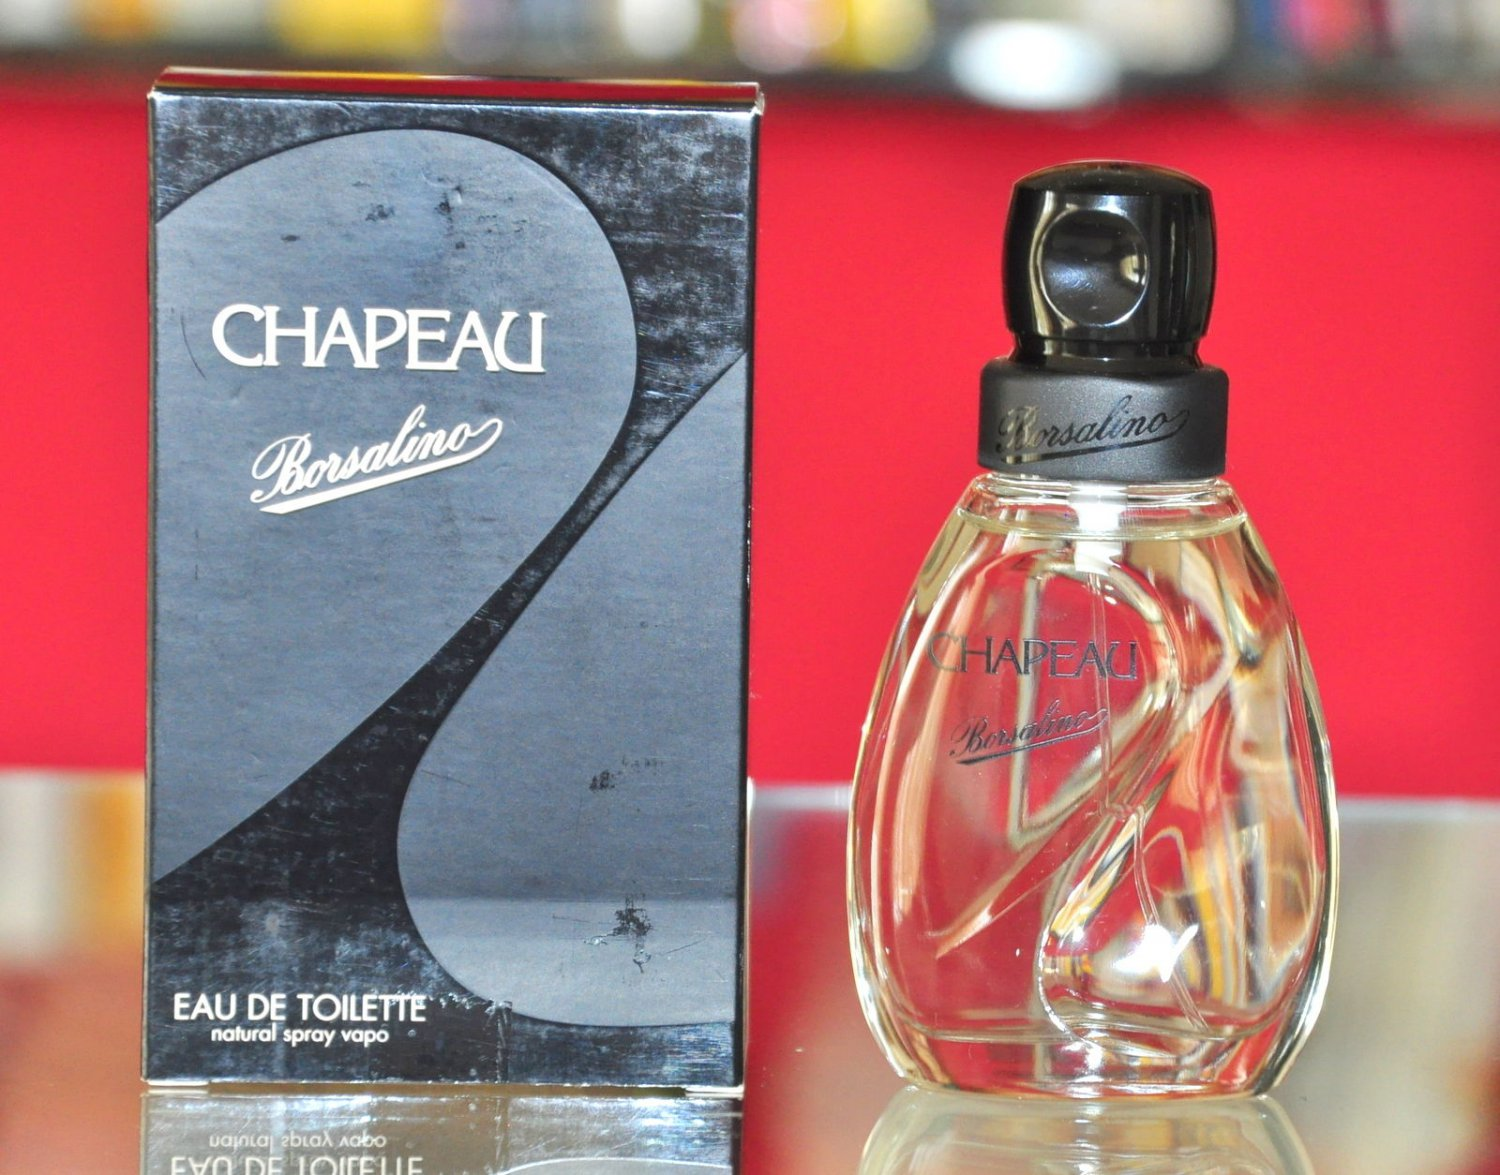 Borsalino Chapeau Eau De Toilette Edt 50ML 1.7 Fl. Oz. Unisex First Version Rare 1997